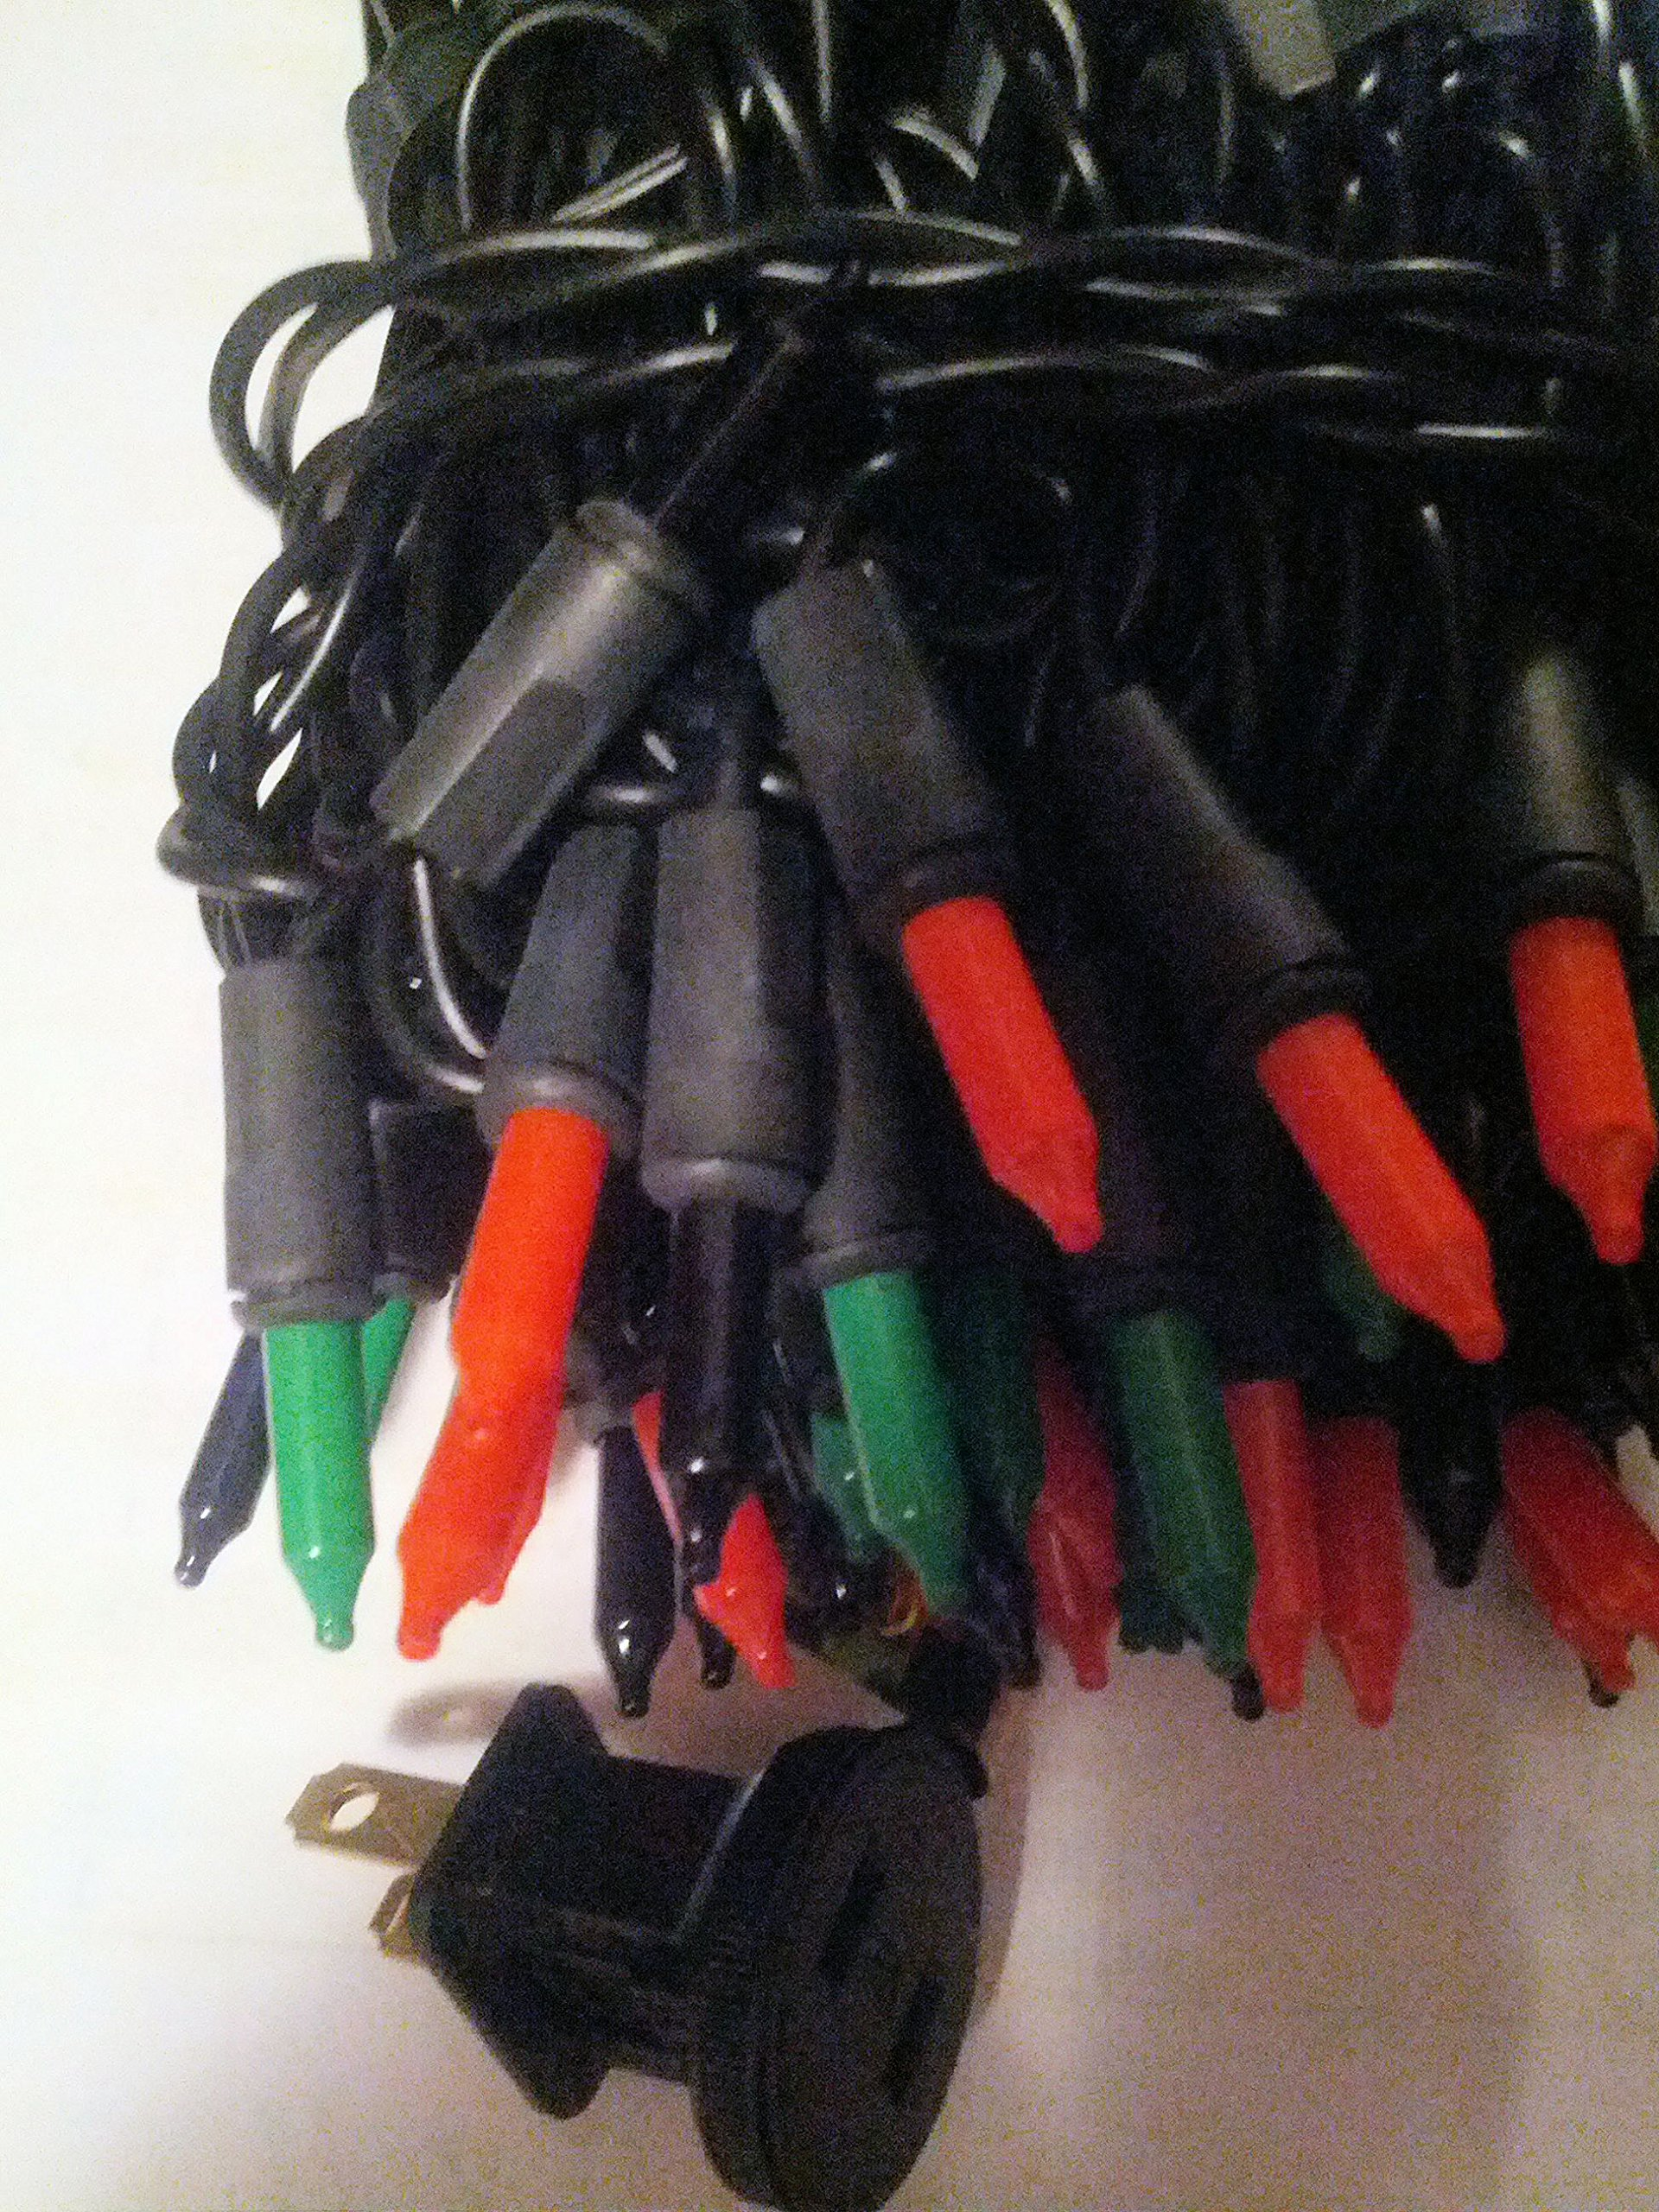 100 Ct Halloween String Light Set, Orange, Green, Purple, Black Cord by Home Accents Holiday (Image #3)